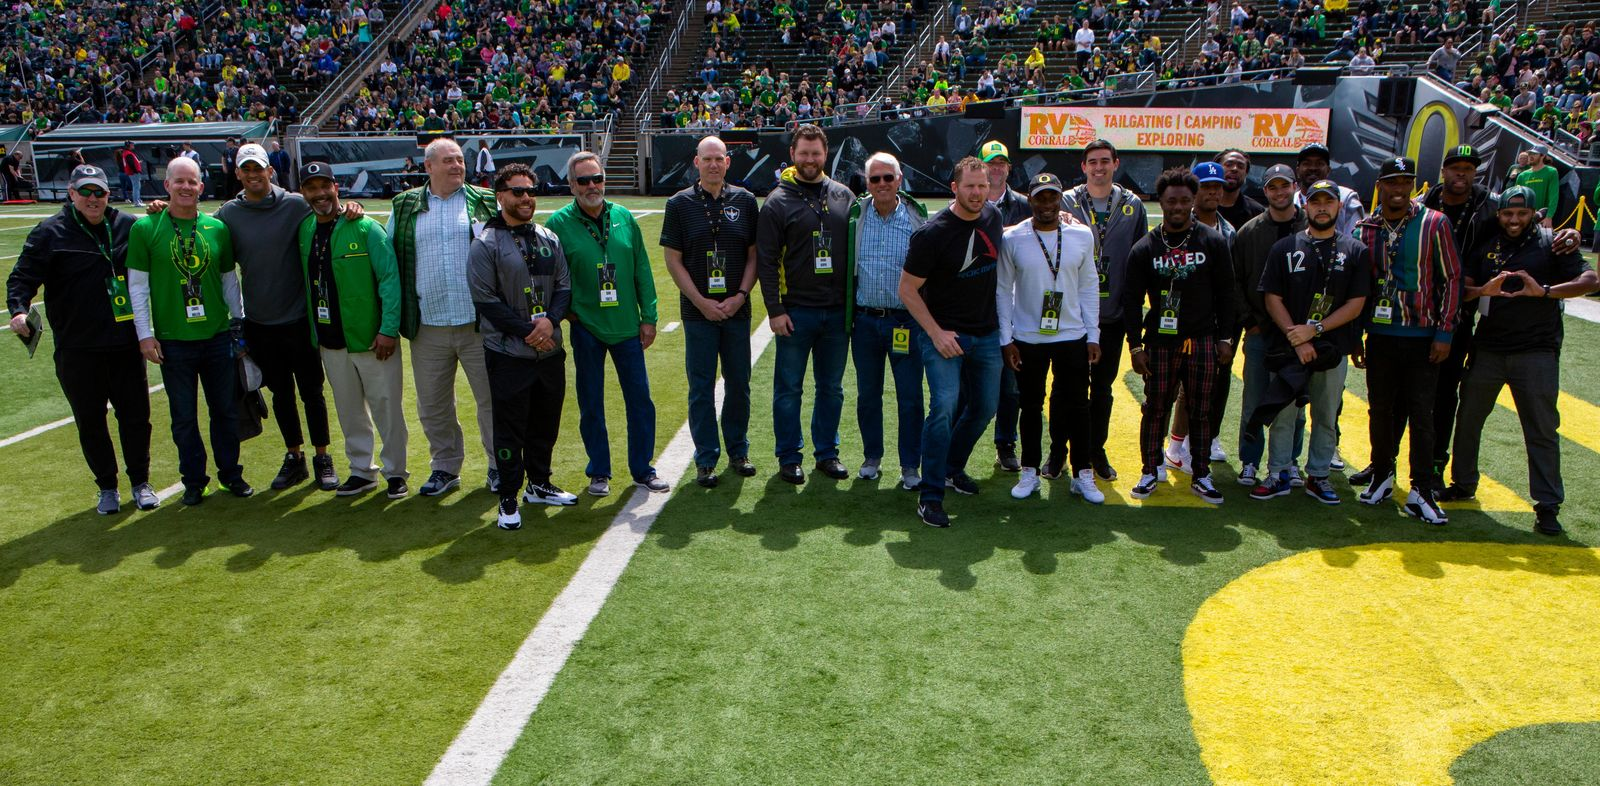 Former Oregon football players pose for a photograph before Saturday's game, Oregon football fans took to Autzen Stadium in Eugene, Ore for the annual spring football game on April 20, 2019. [Ben Lonergan for KVAL.com] - KVAL.com